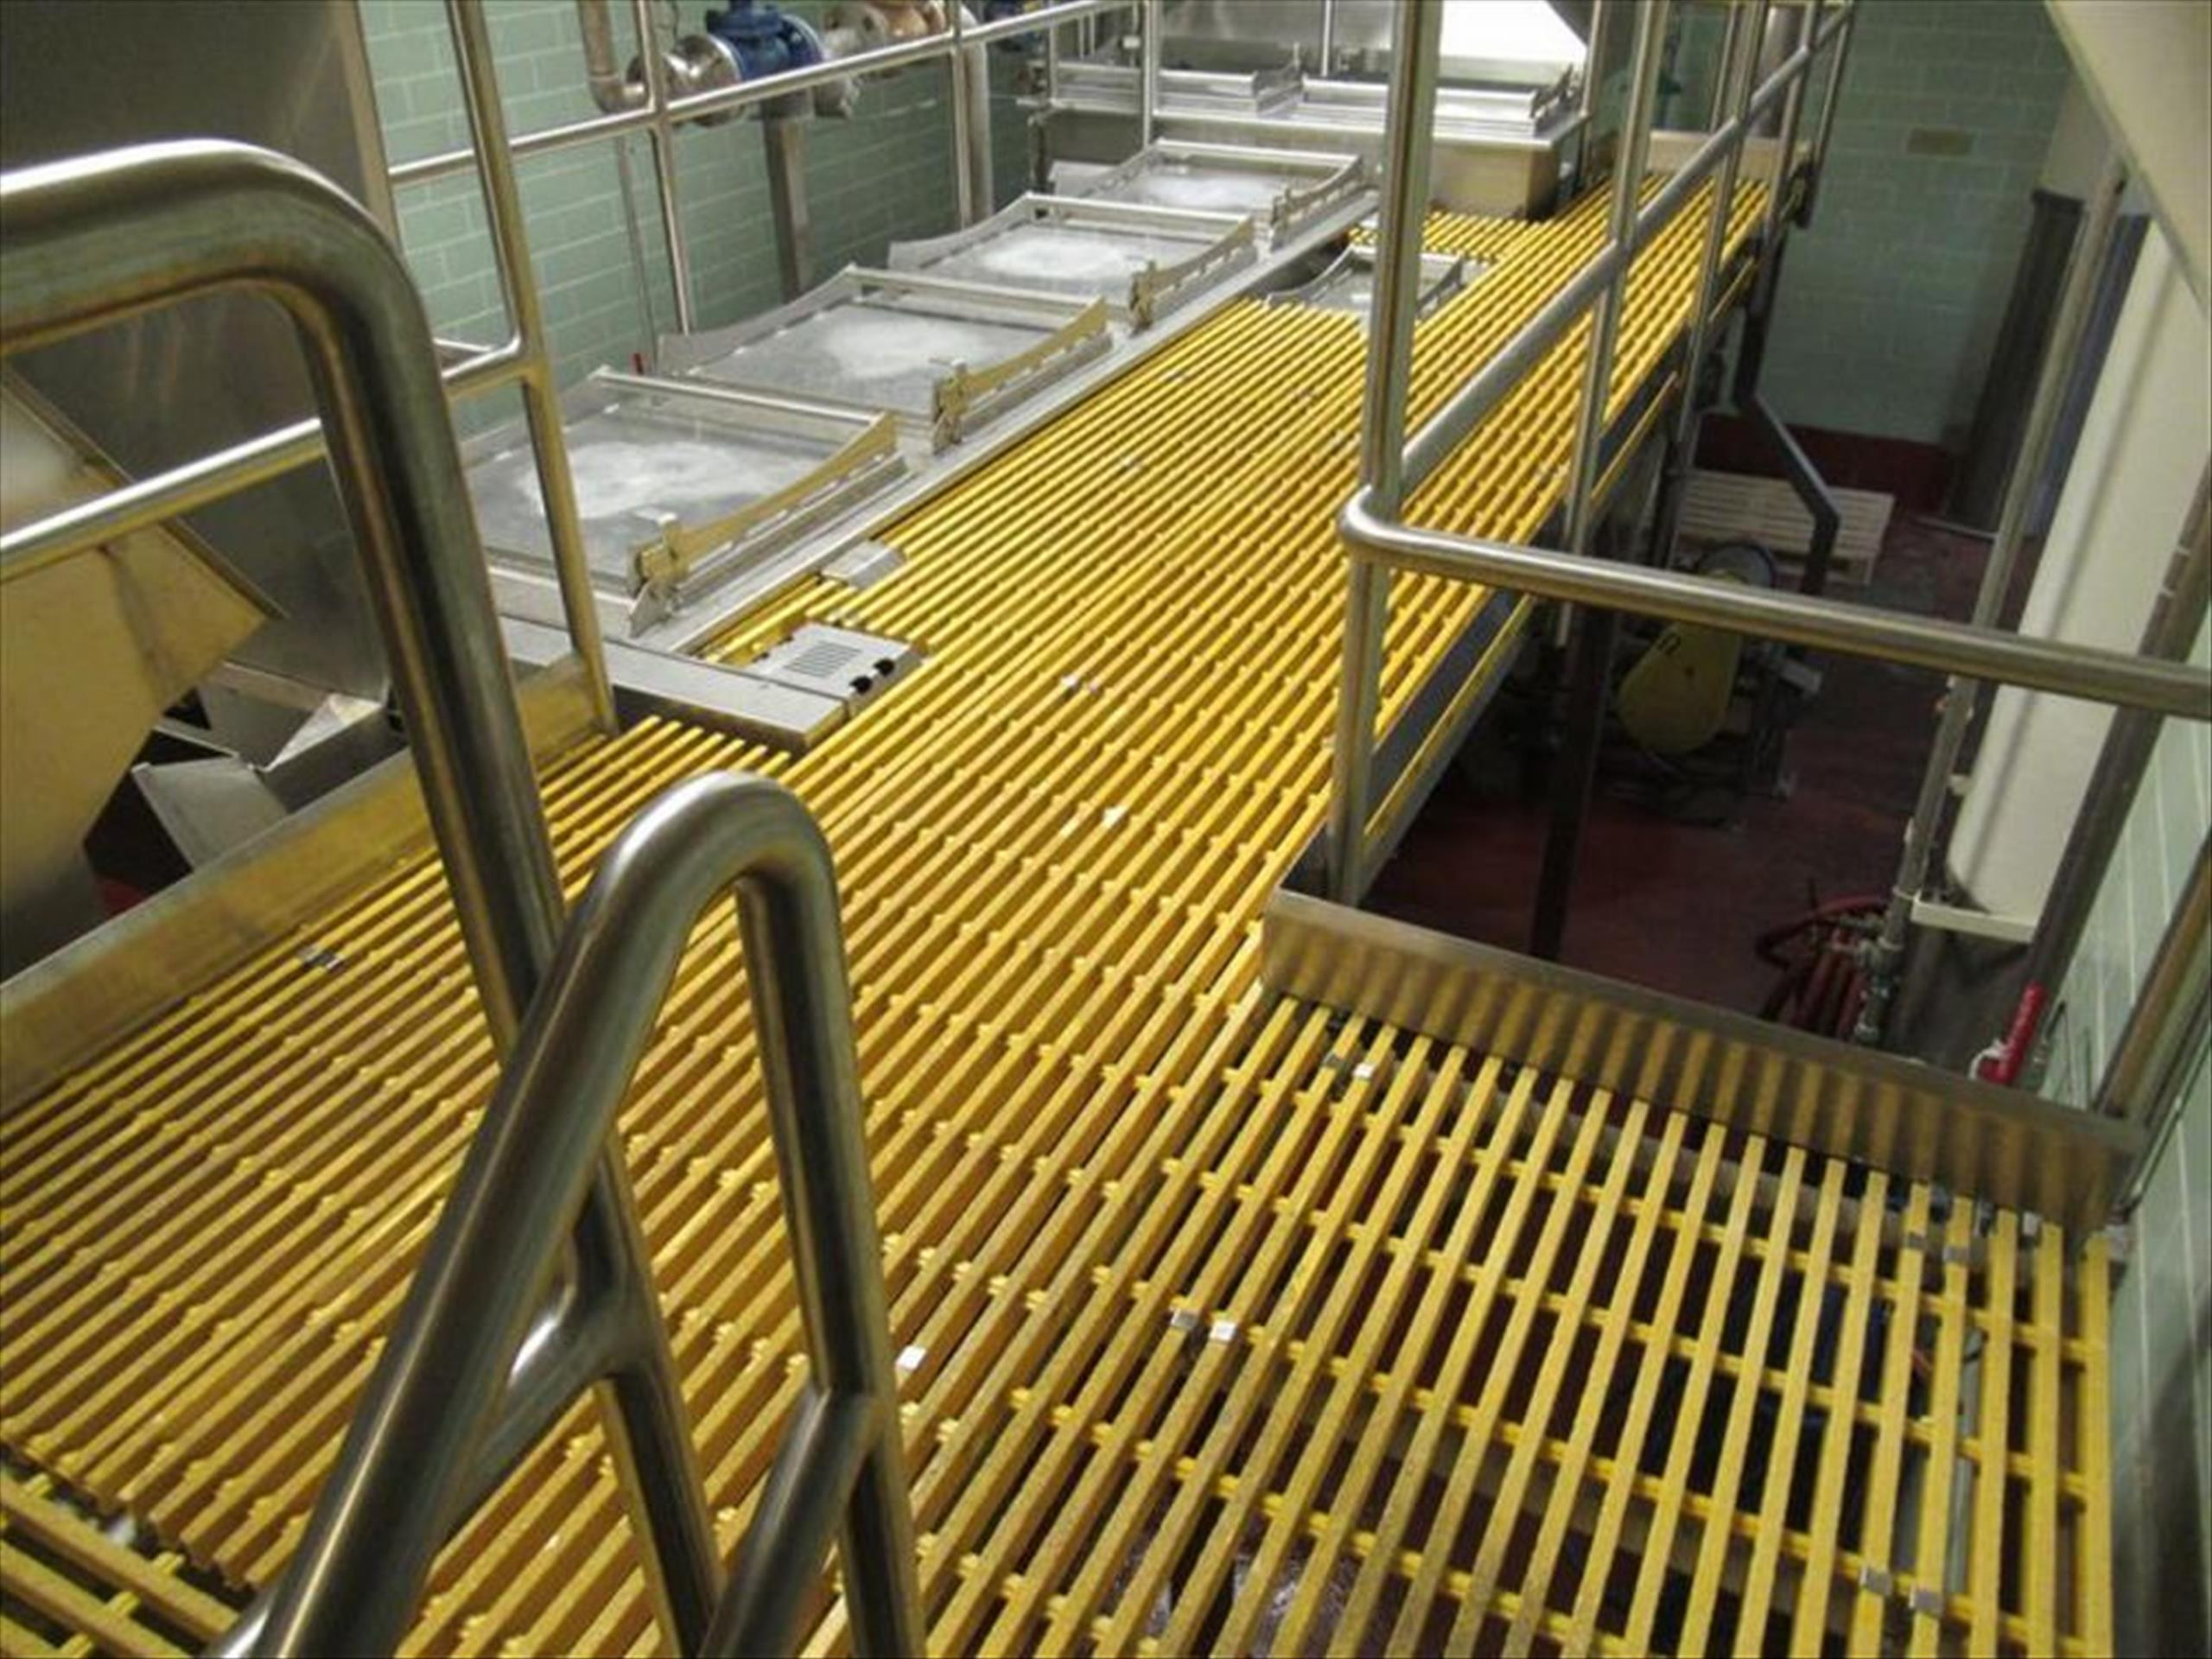 Blancher inspection platform with (2) 10 steps stairways, Hd stainless framing and safety rails, - Image 2 of 4